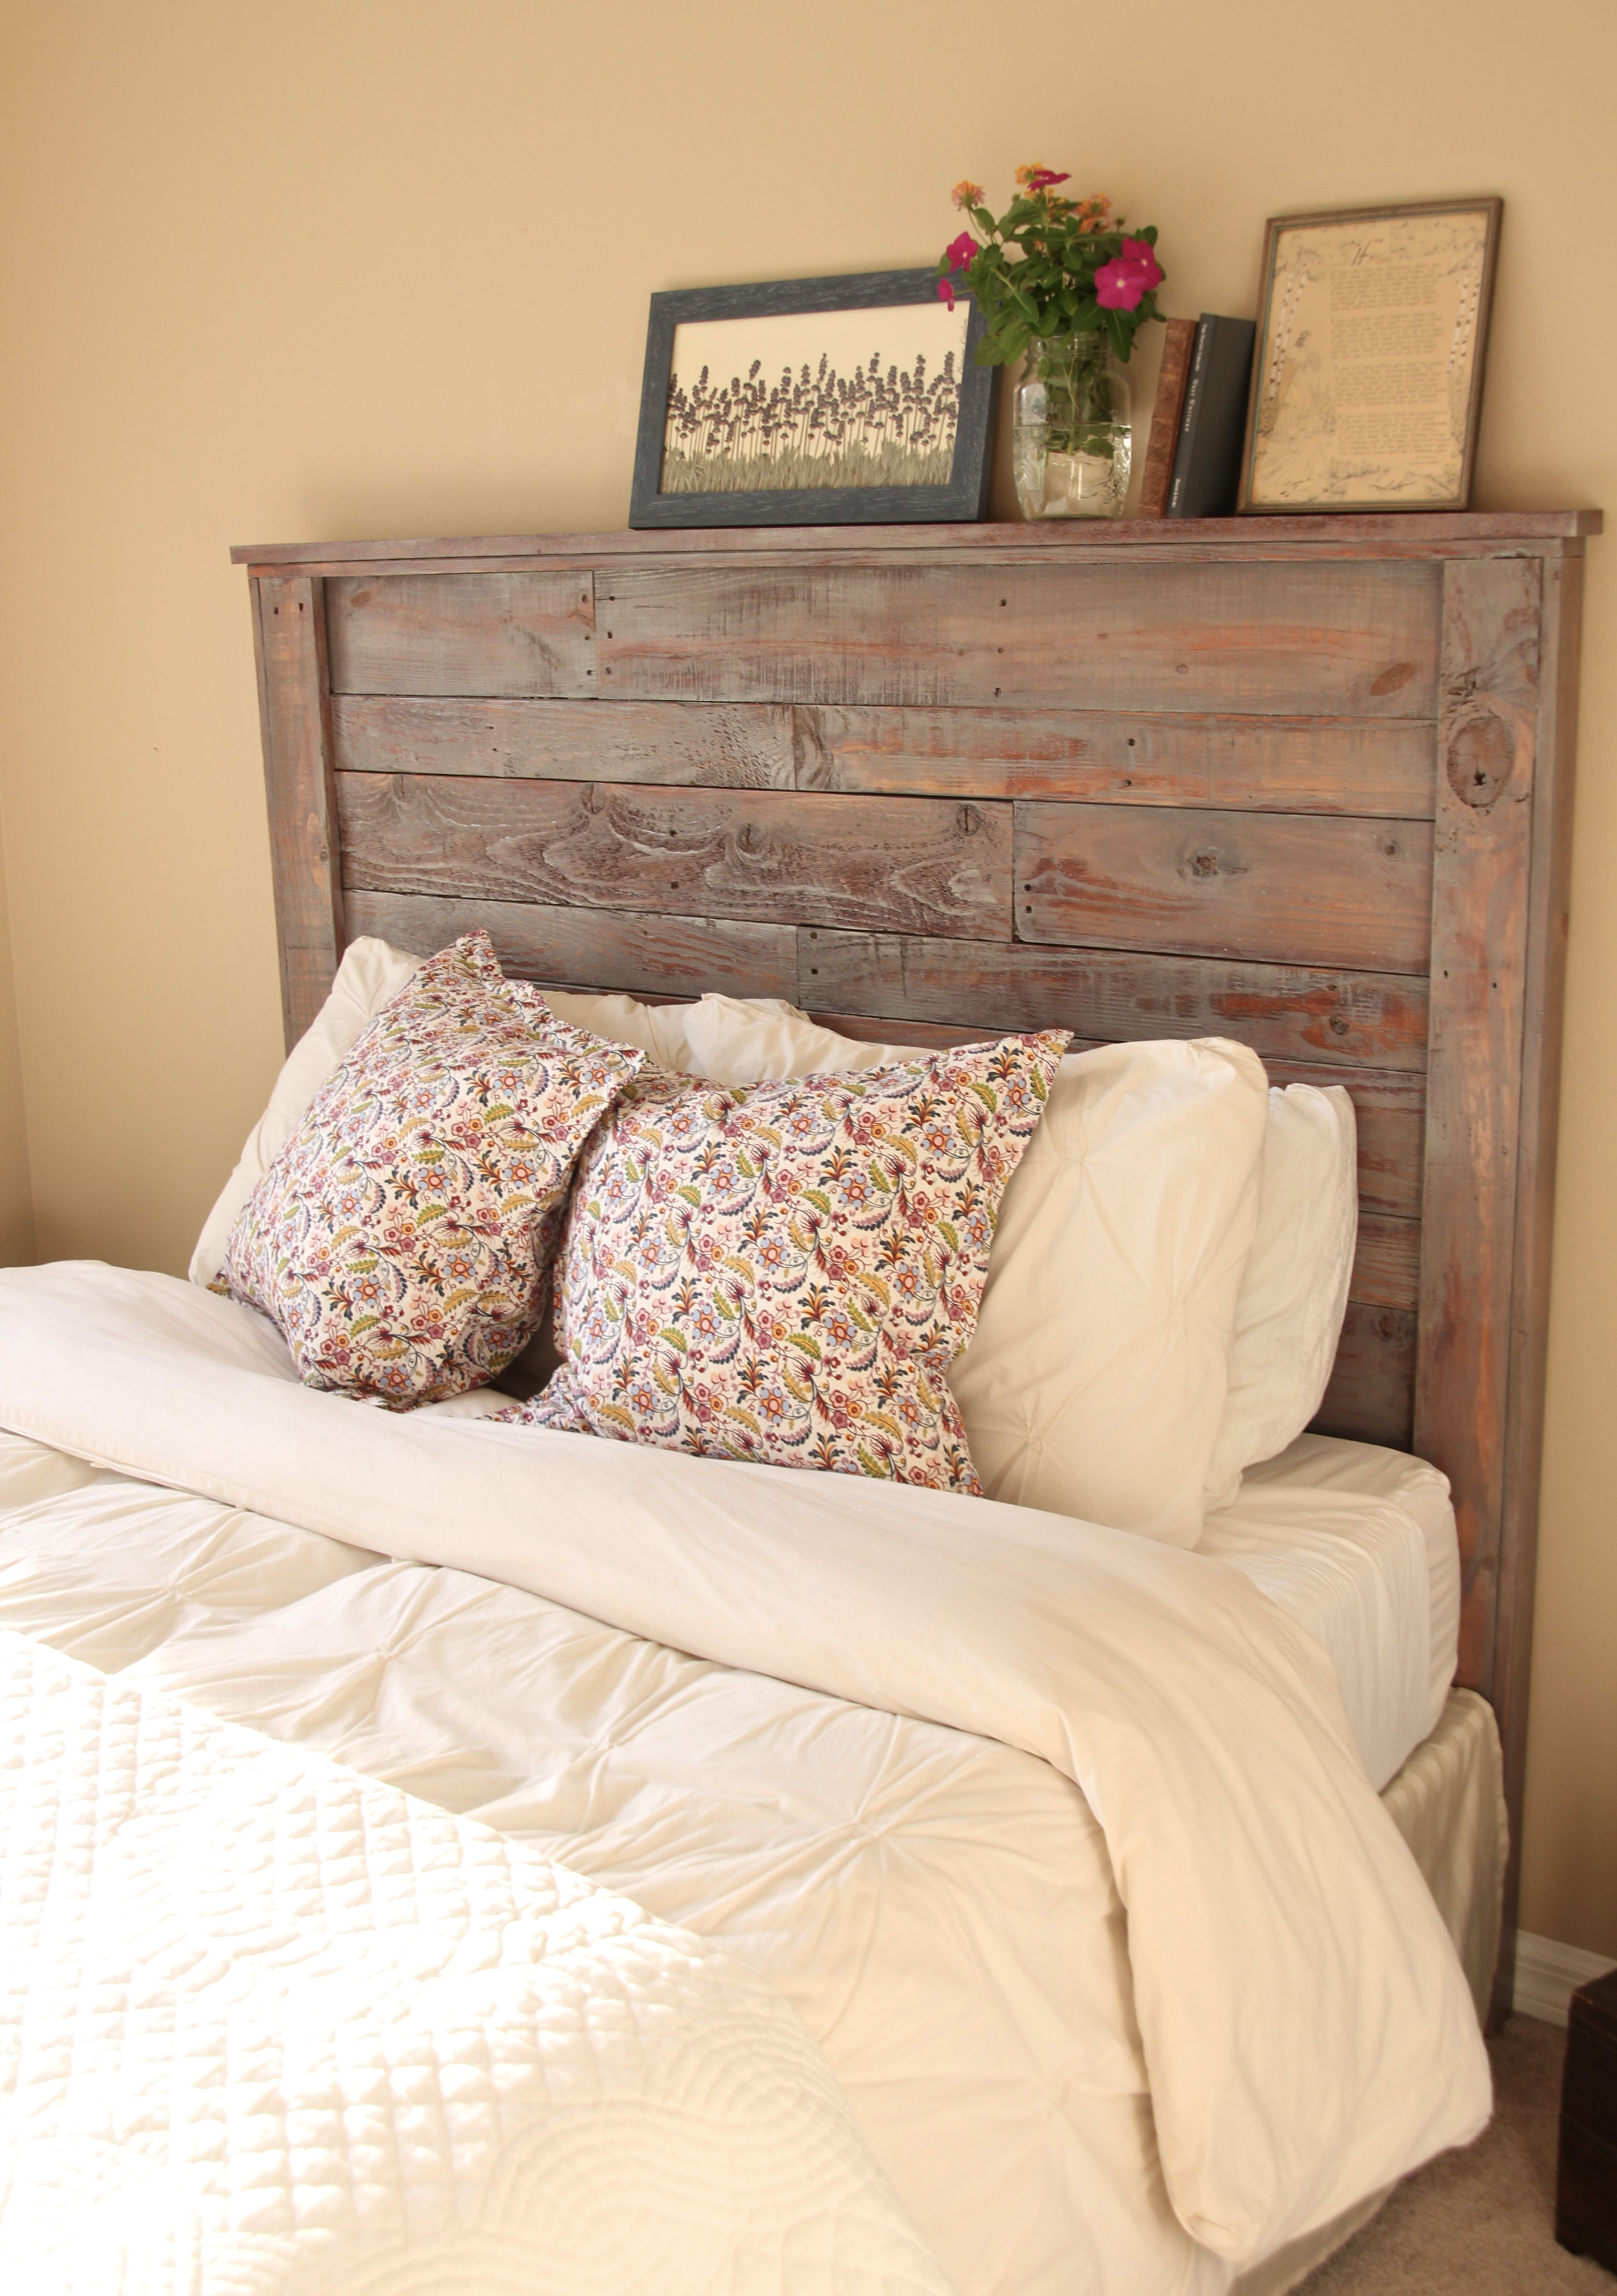 59 Incredibly Simple Rustic Décor Ideas That Can Make Your: Home Enhancements By Jana » Pallet Wood Headboard